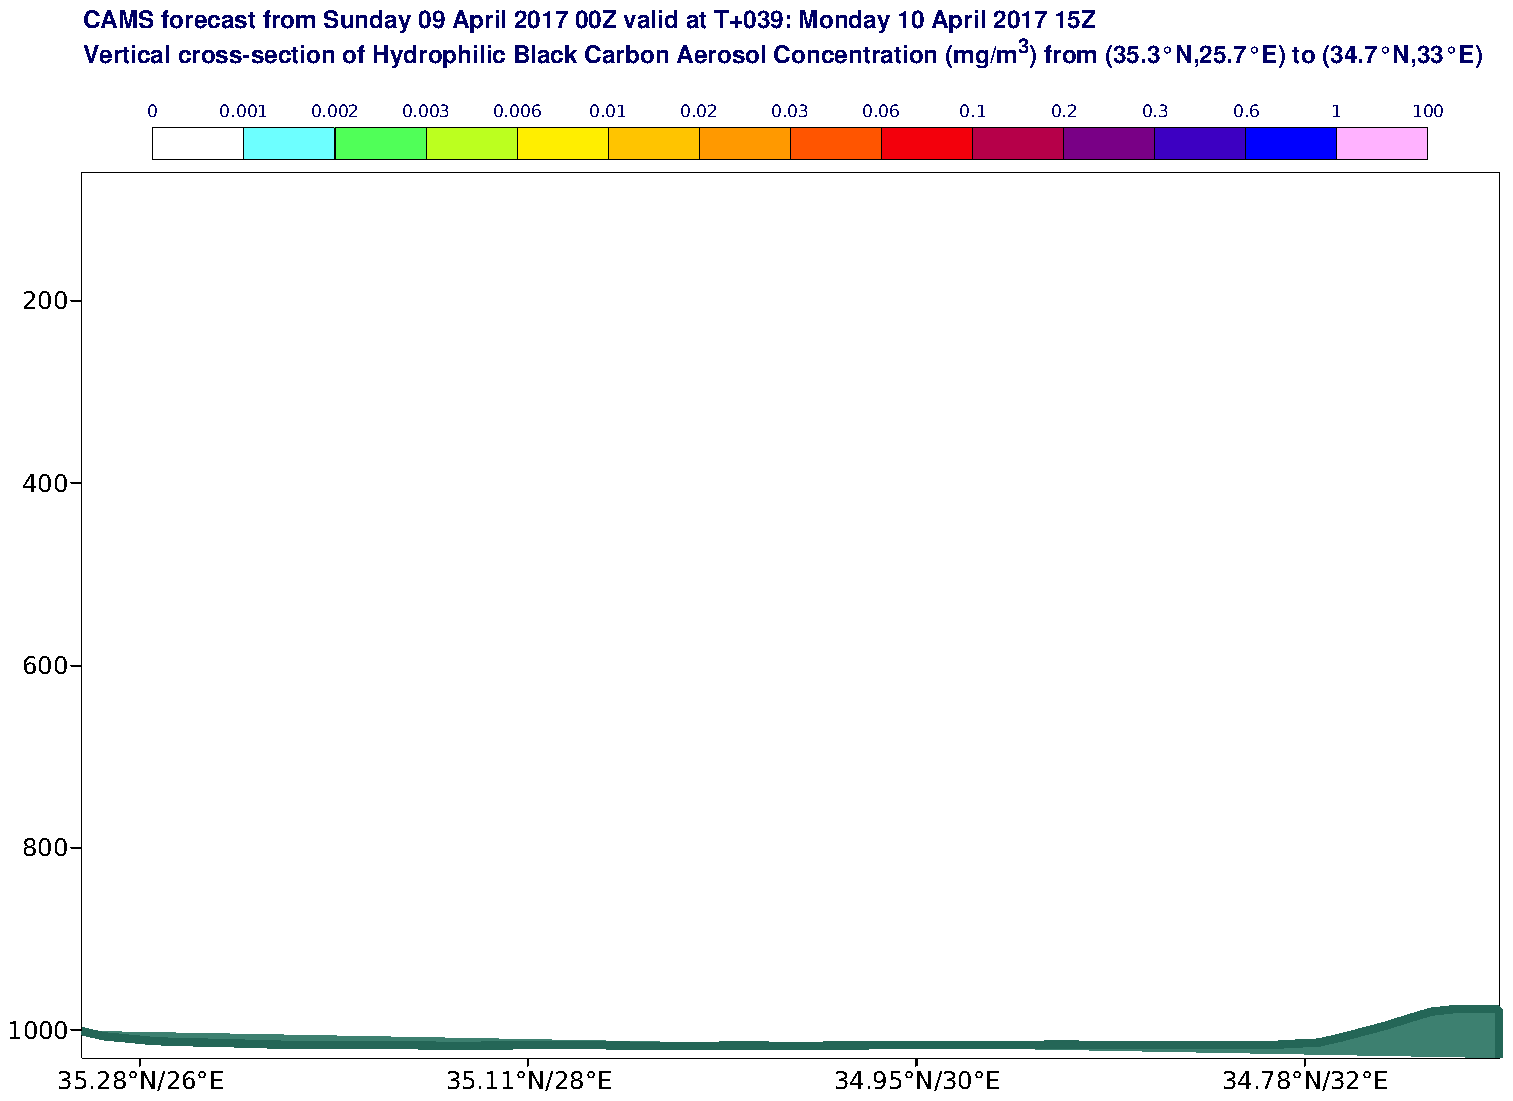 Vertical cross-section of Hydrophilic Black Carbon Aerosol Concentration (mg/m3) valid at T39 - 2017-04-10 15:00